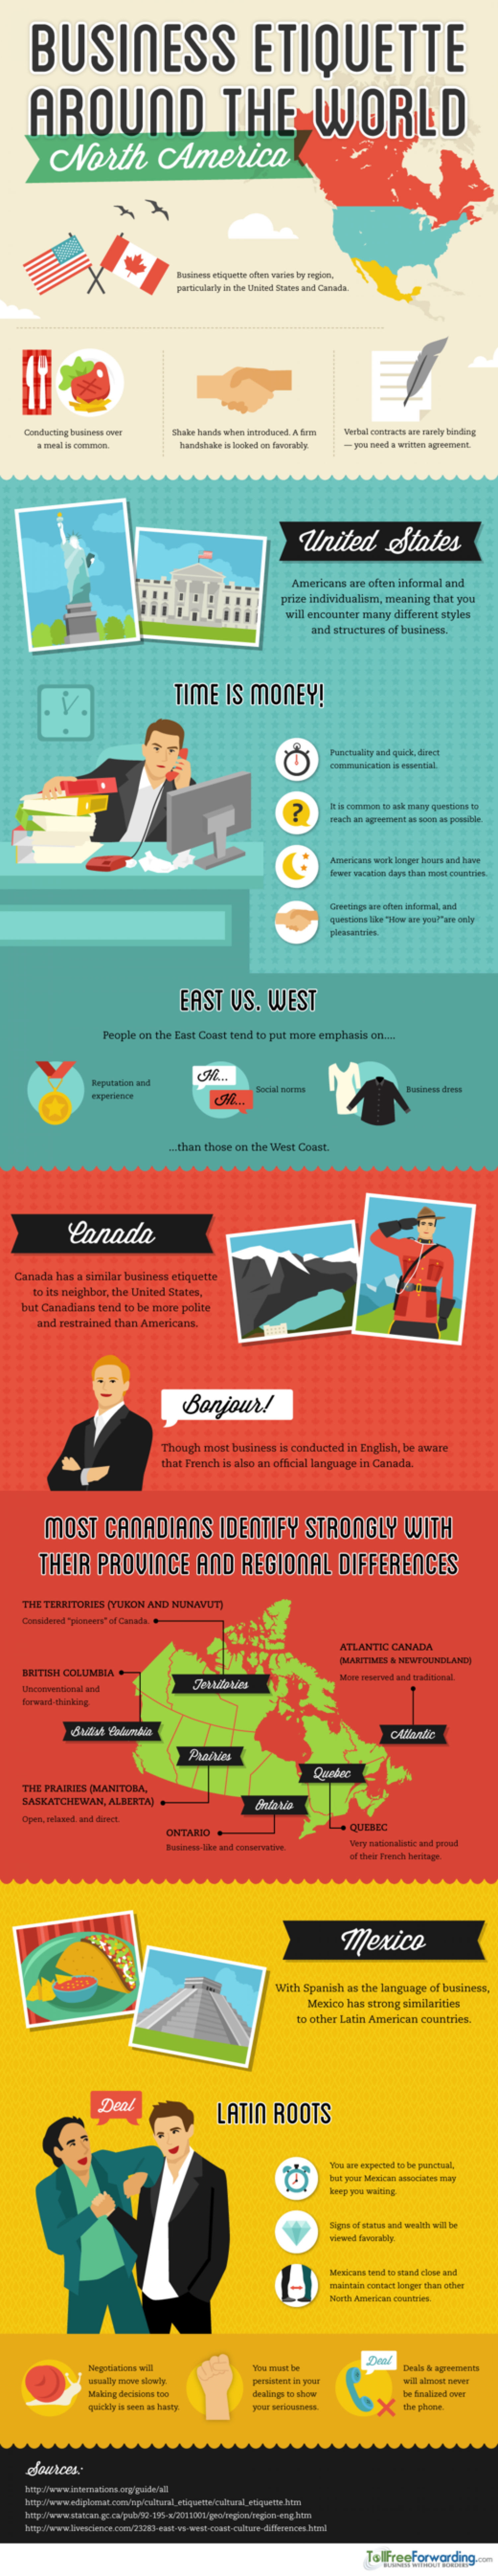 Business Etiquette: North America Infographic